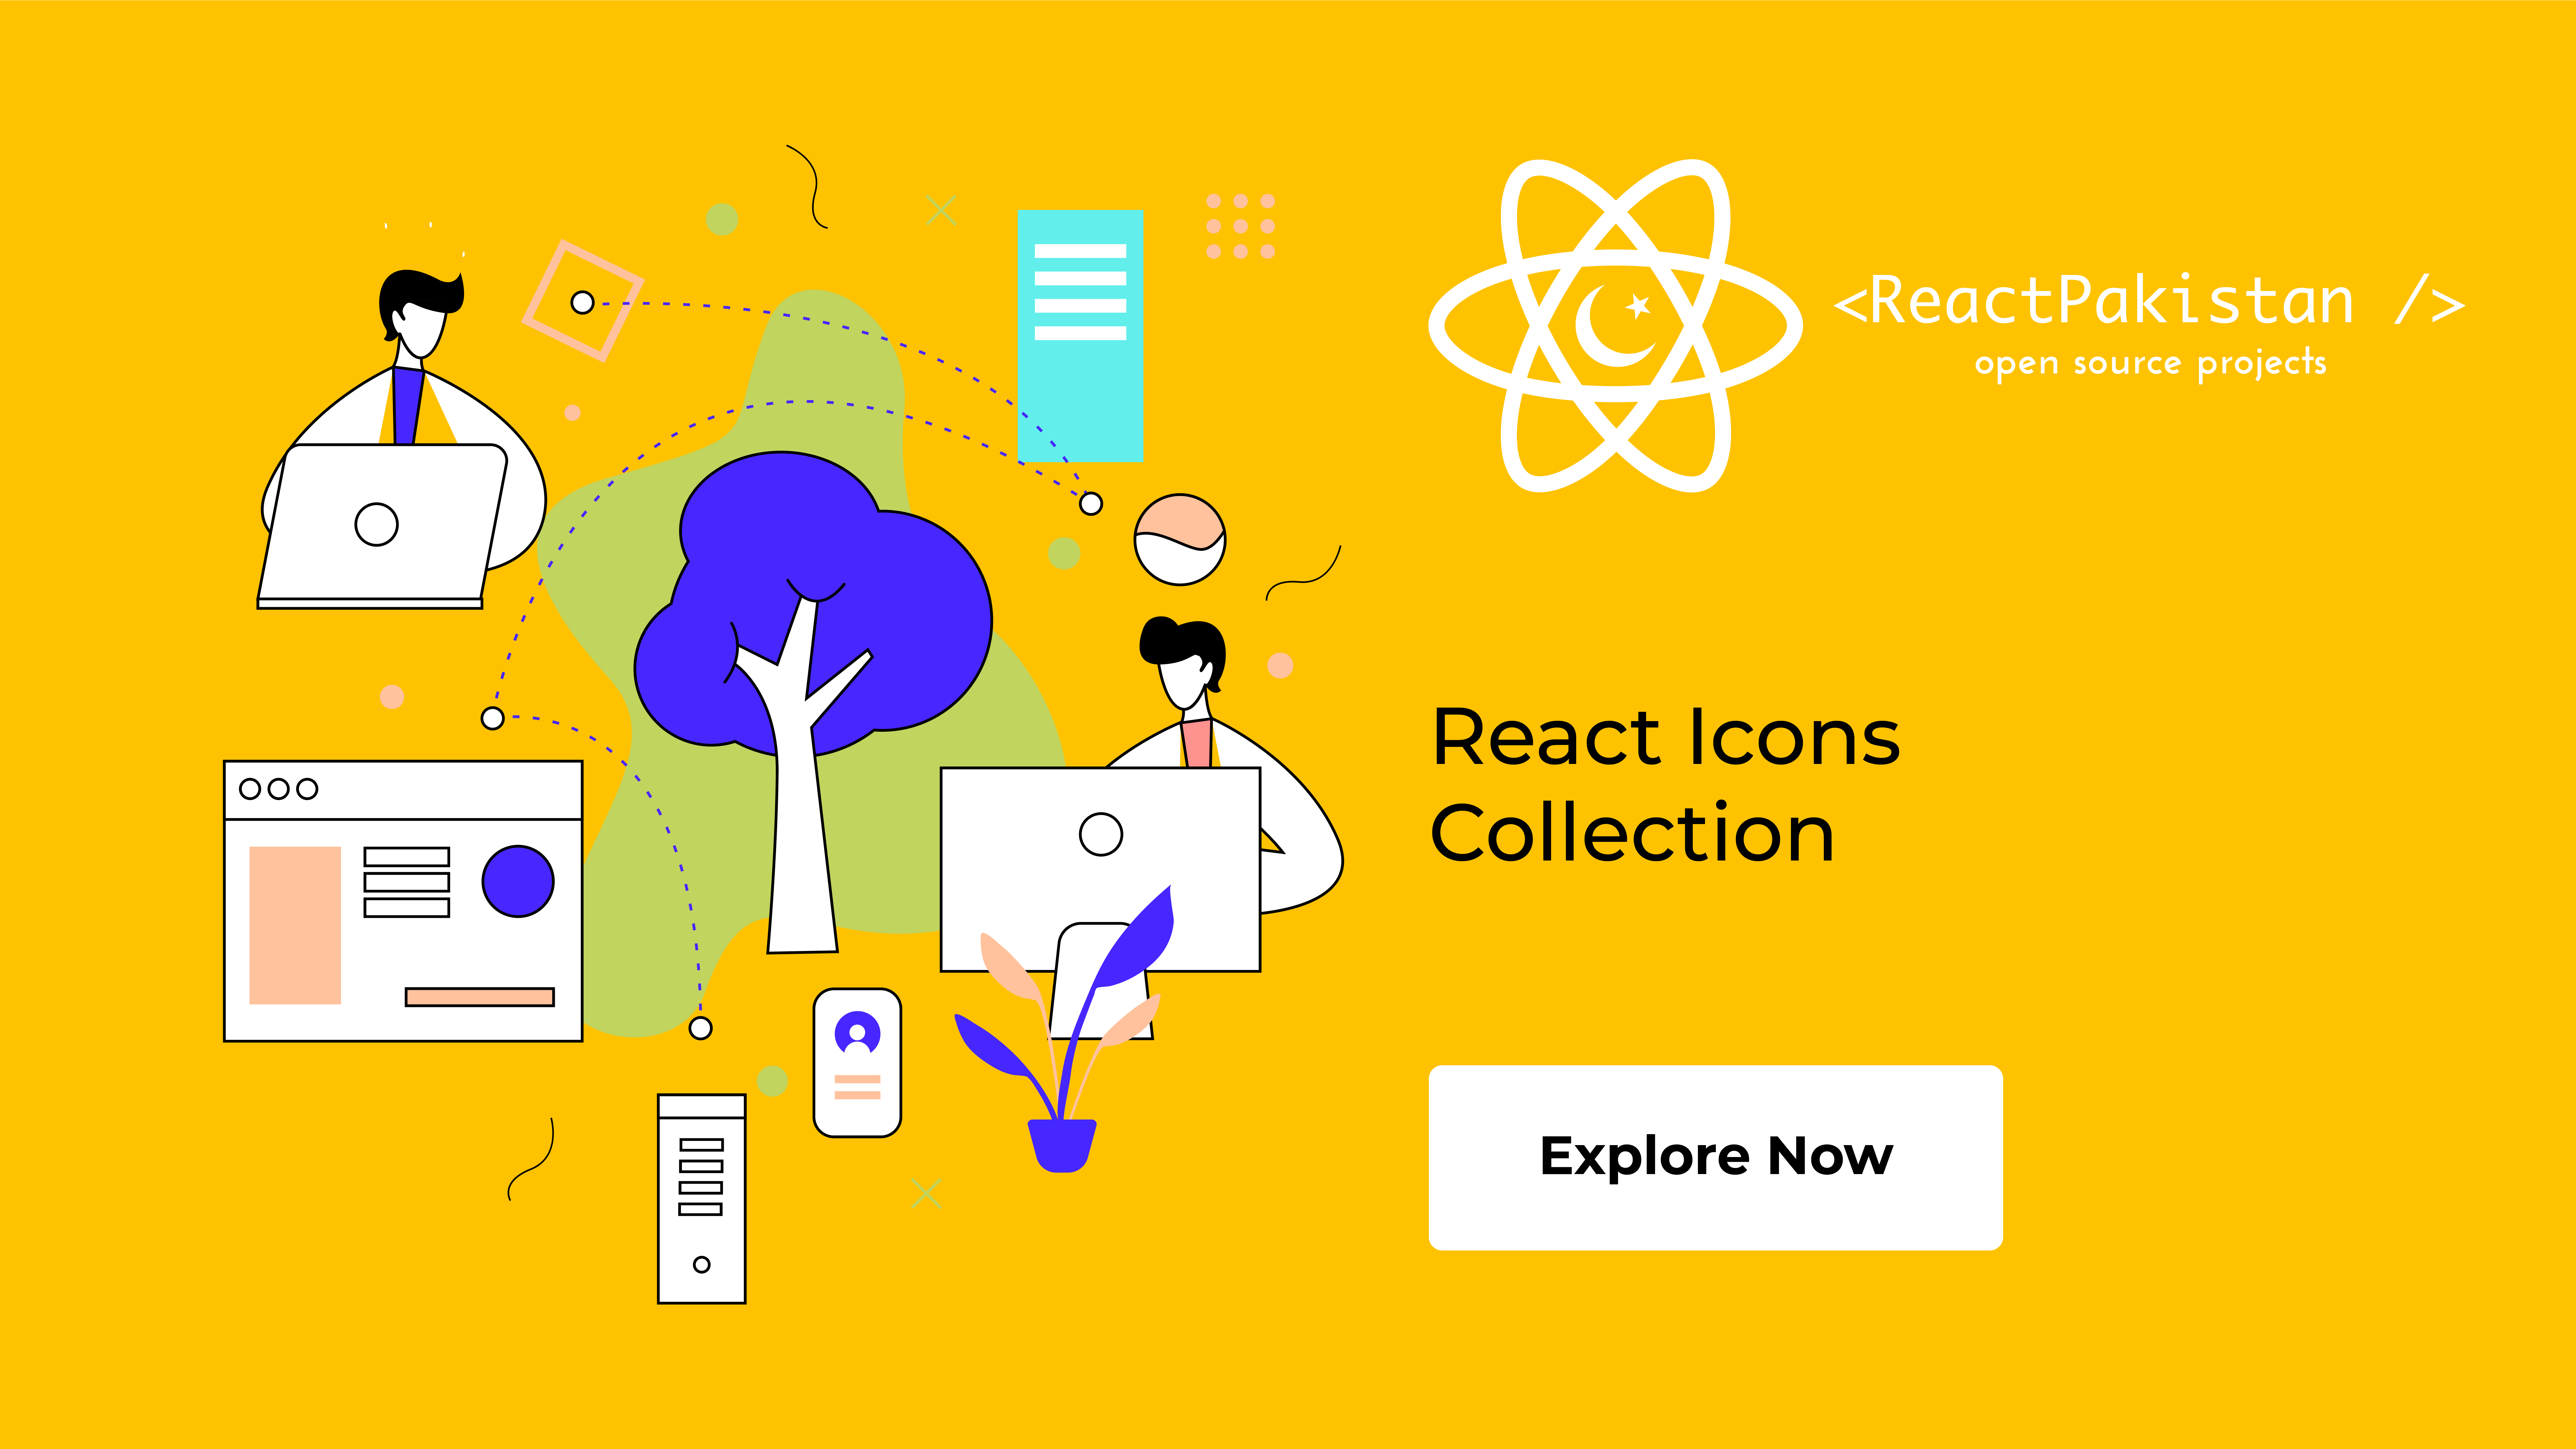 React Pakistan - React Icon Collection